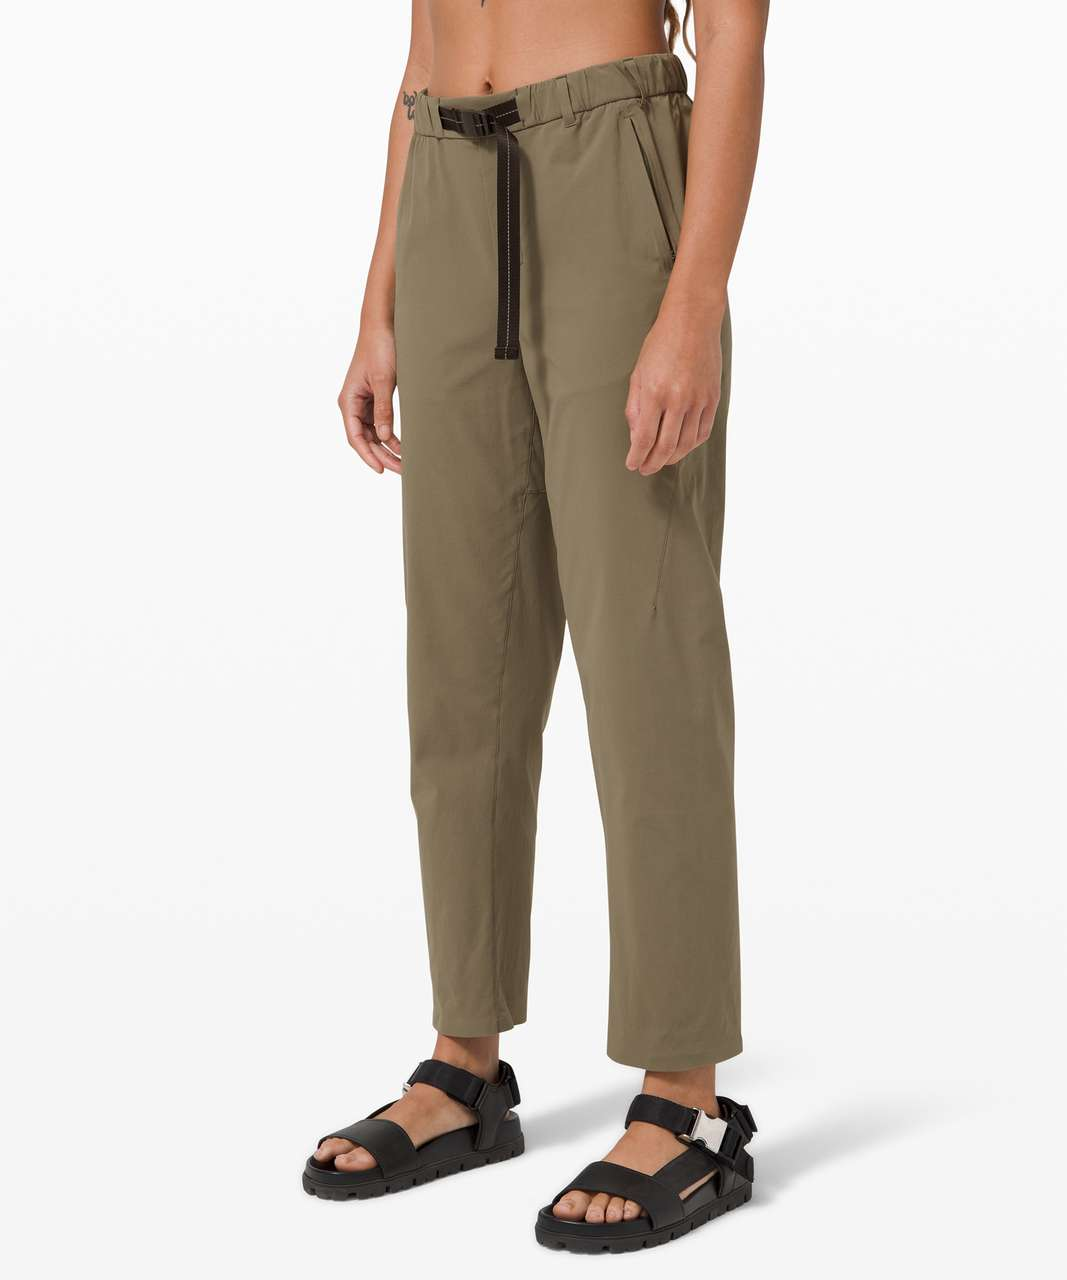 Lululemon Sarala Pant  *lululemon lab - Light Military